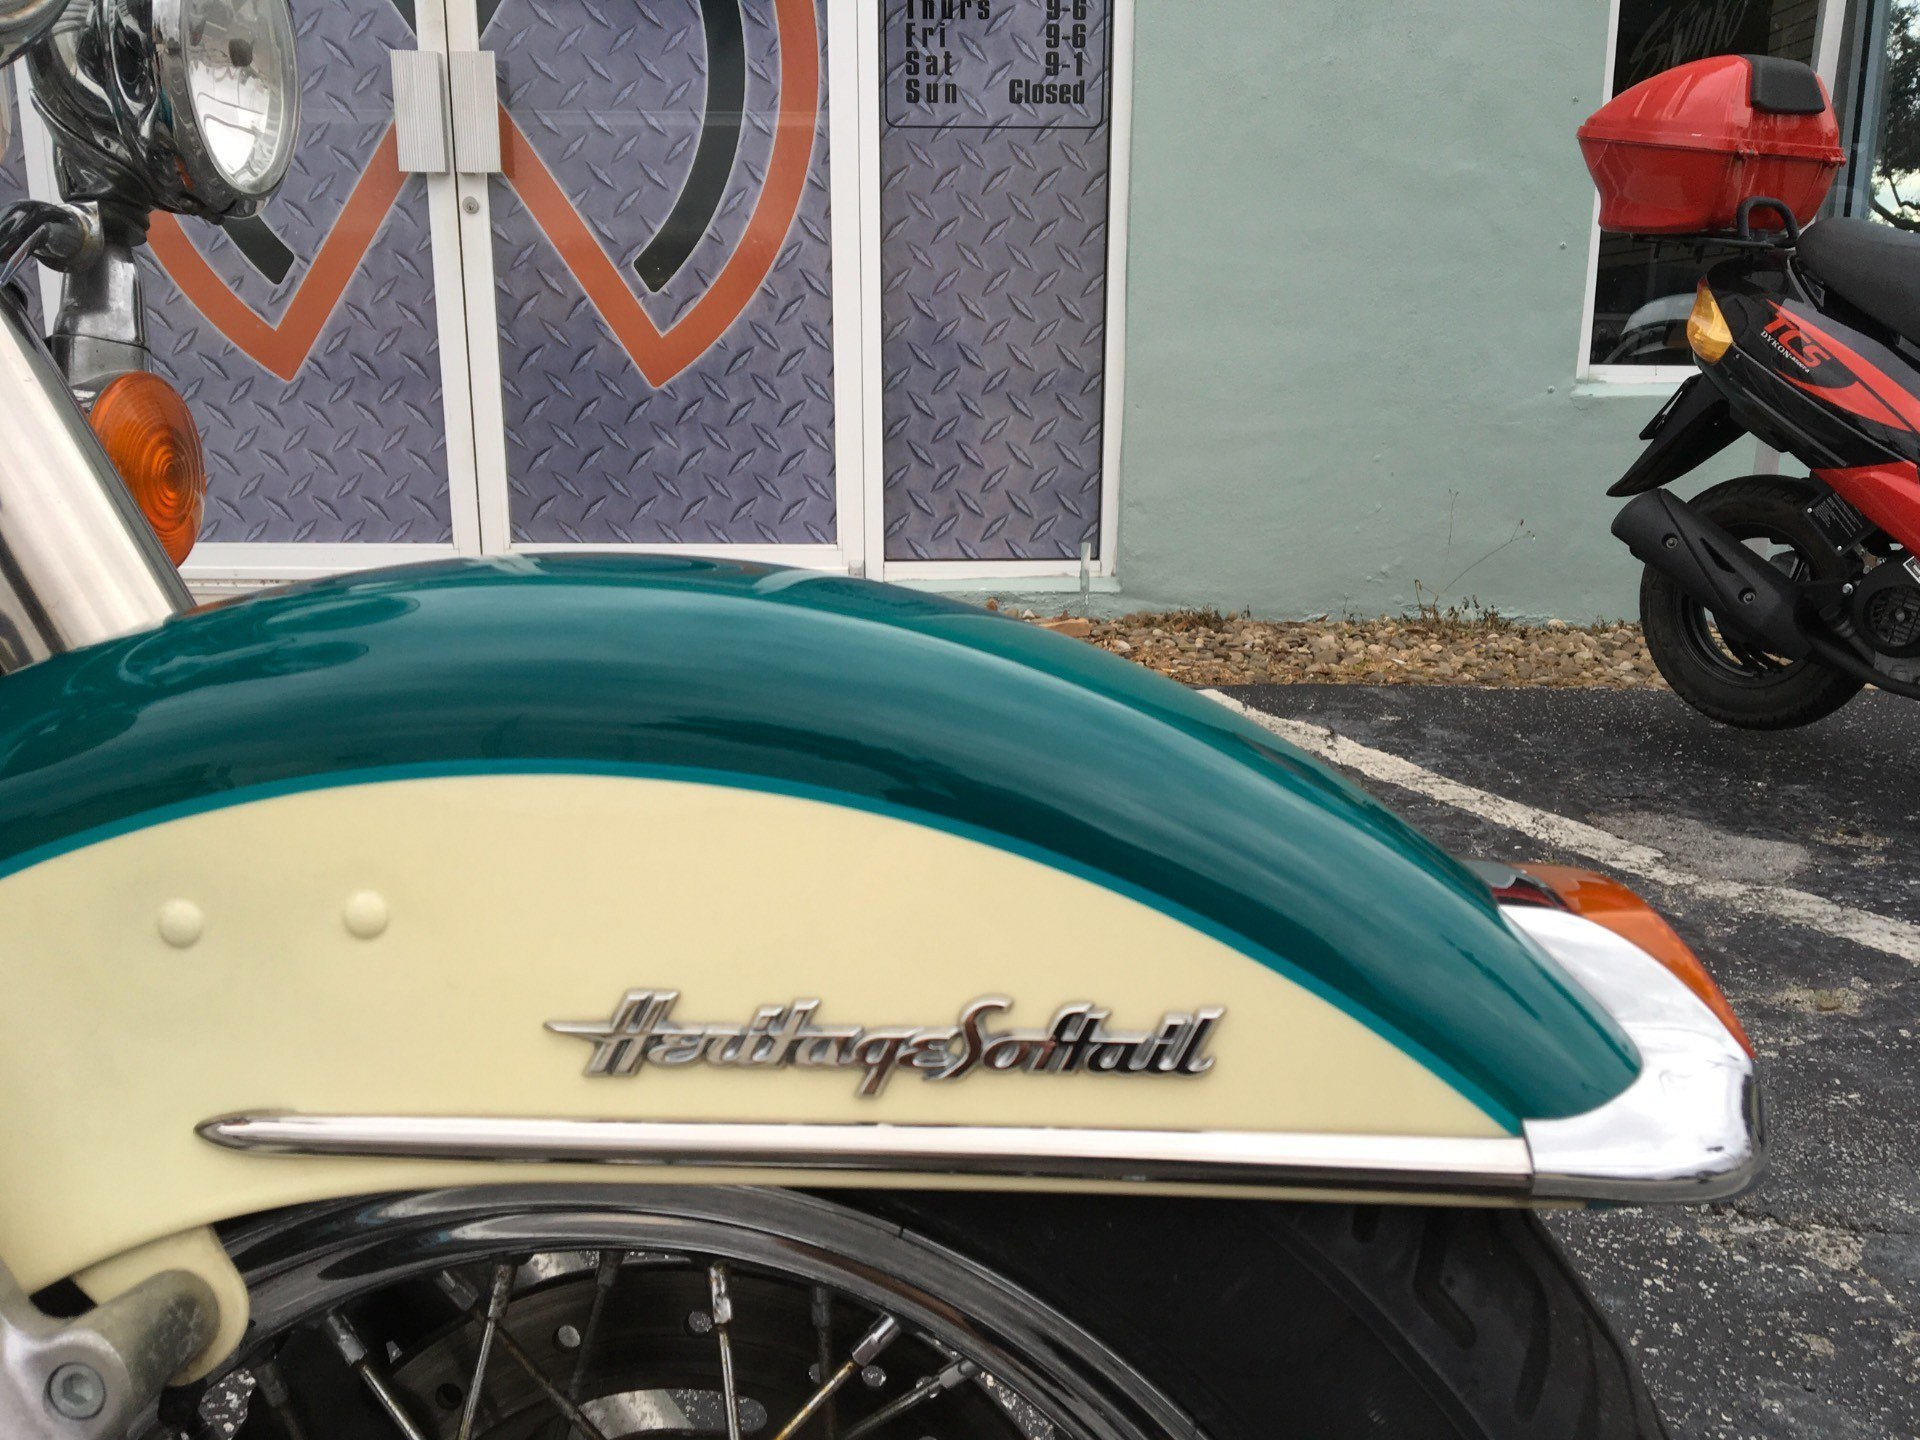 2009 Harley-Davidson Heritage softail classic in Cocoa, Florida - Photo 14